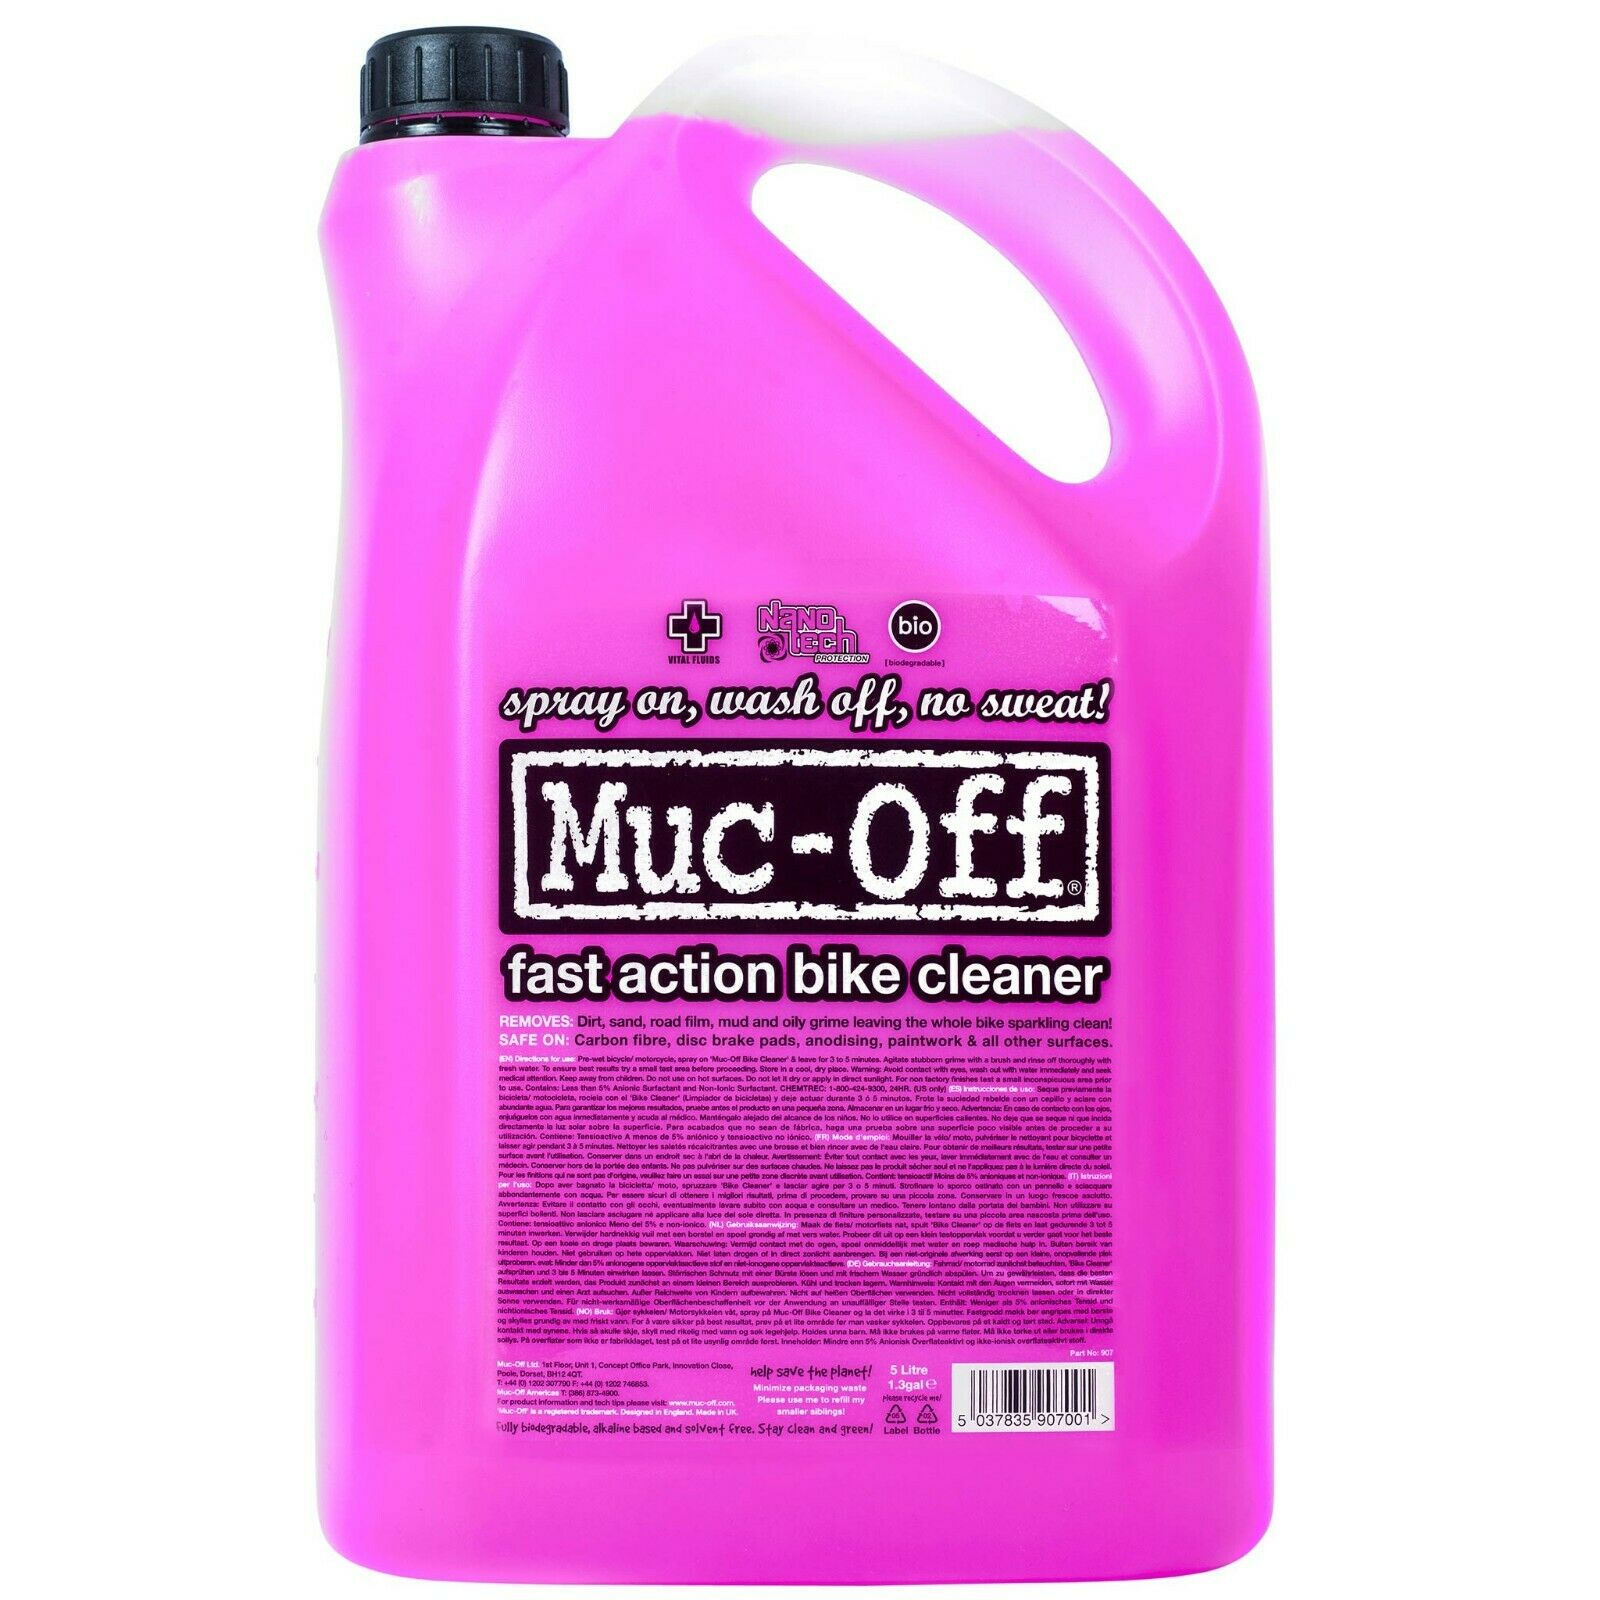 MUC-OFF Detergente Bike Cleaner 5 Litri